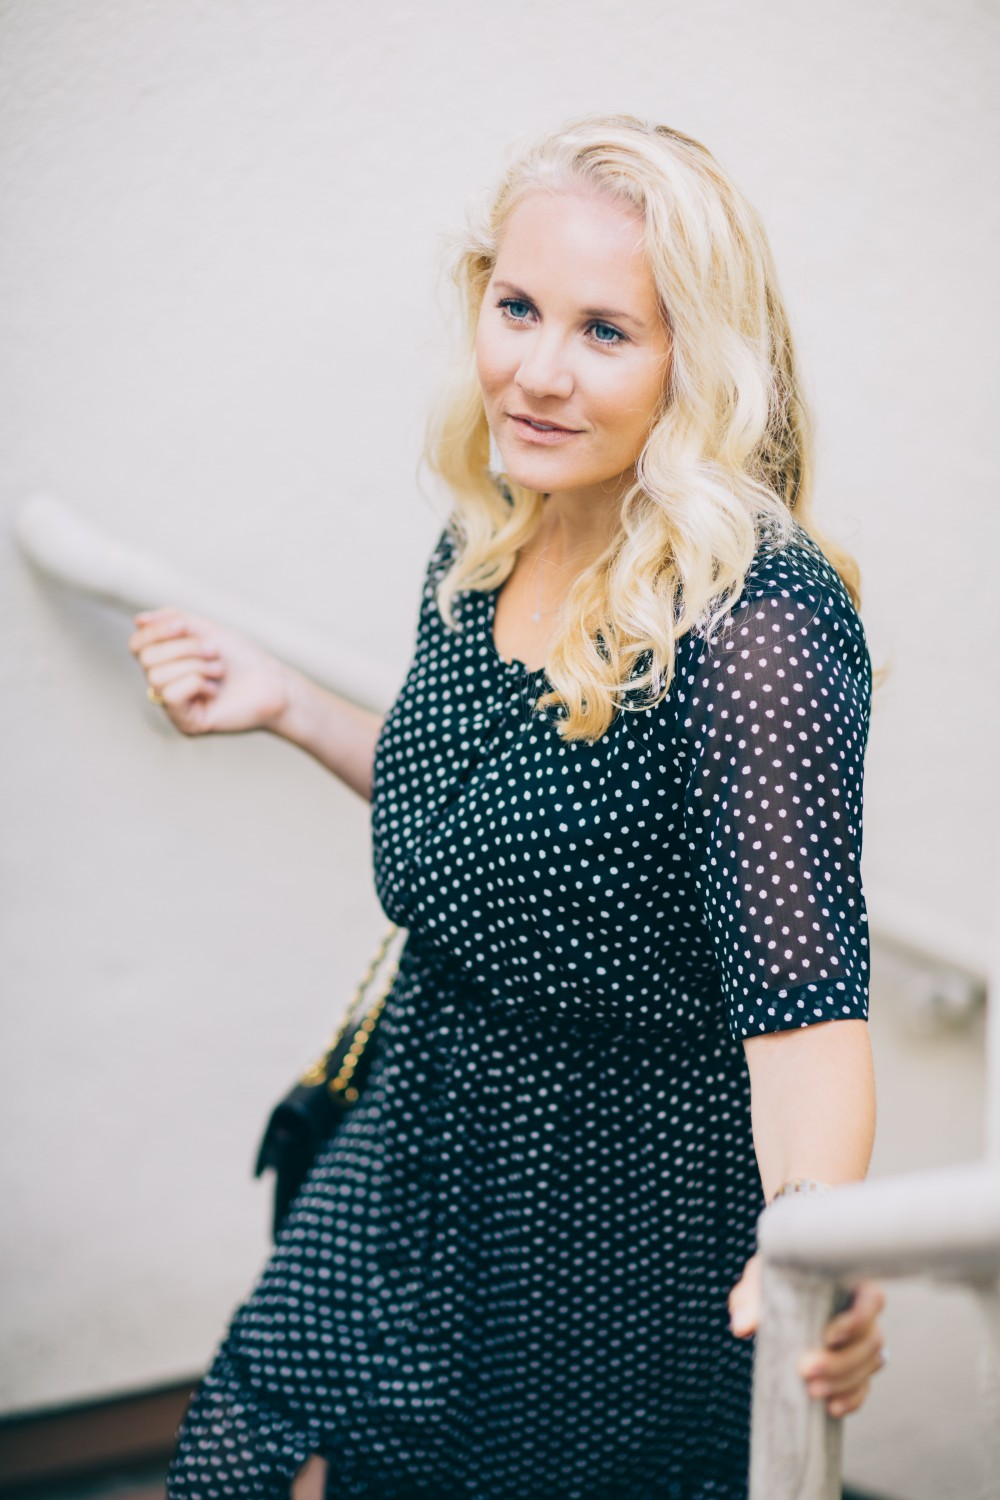 Black and White Polka Dot Maxi Dress-Who What Wear for Target-Target Maxi Dress-Polka Dot Dress-Outfit Inspiration-Bay Area Fashion Blogger-Have Need Want 6